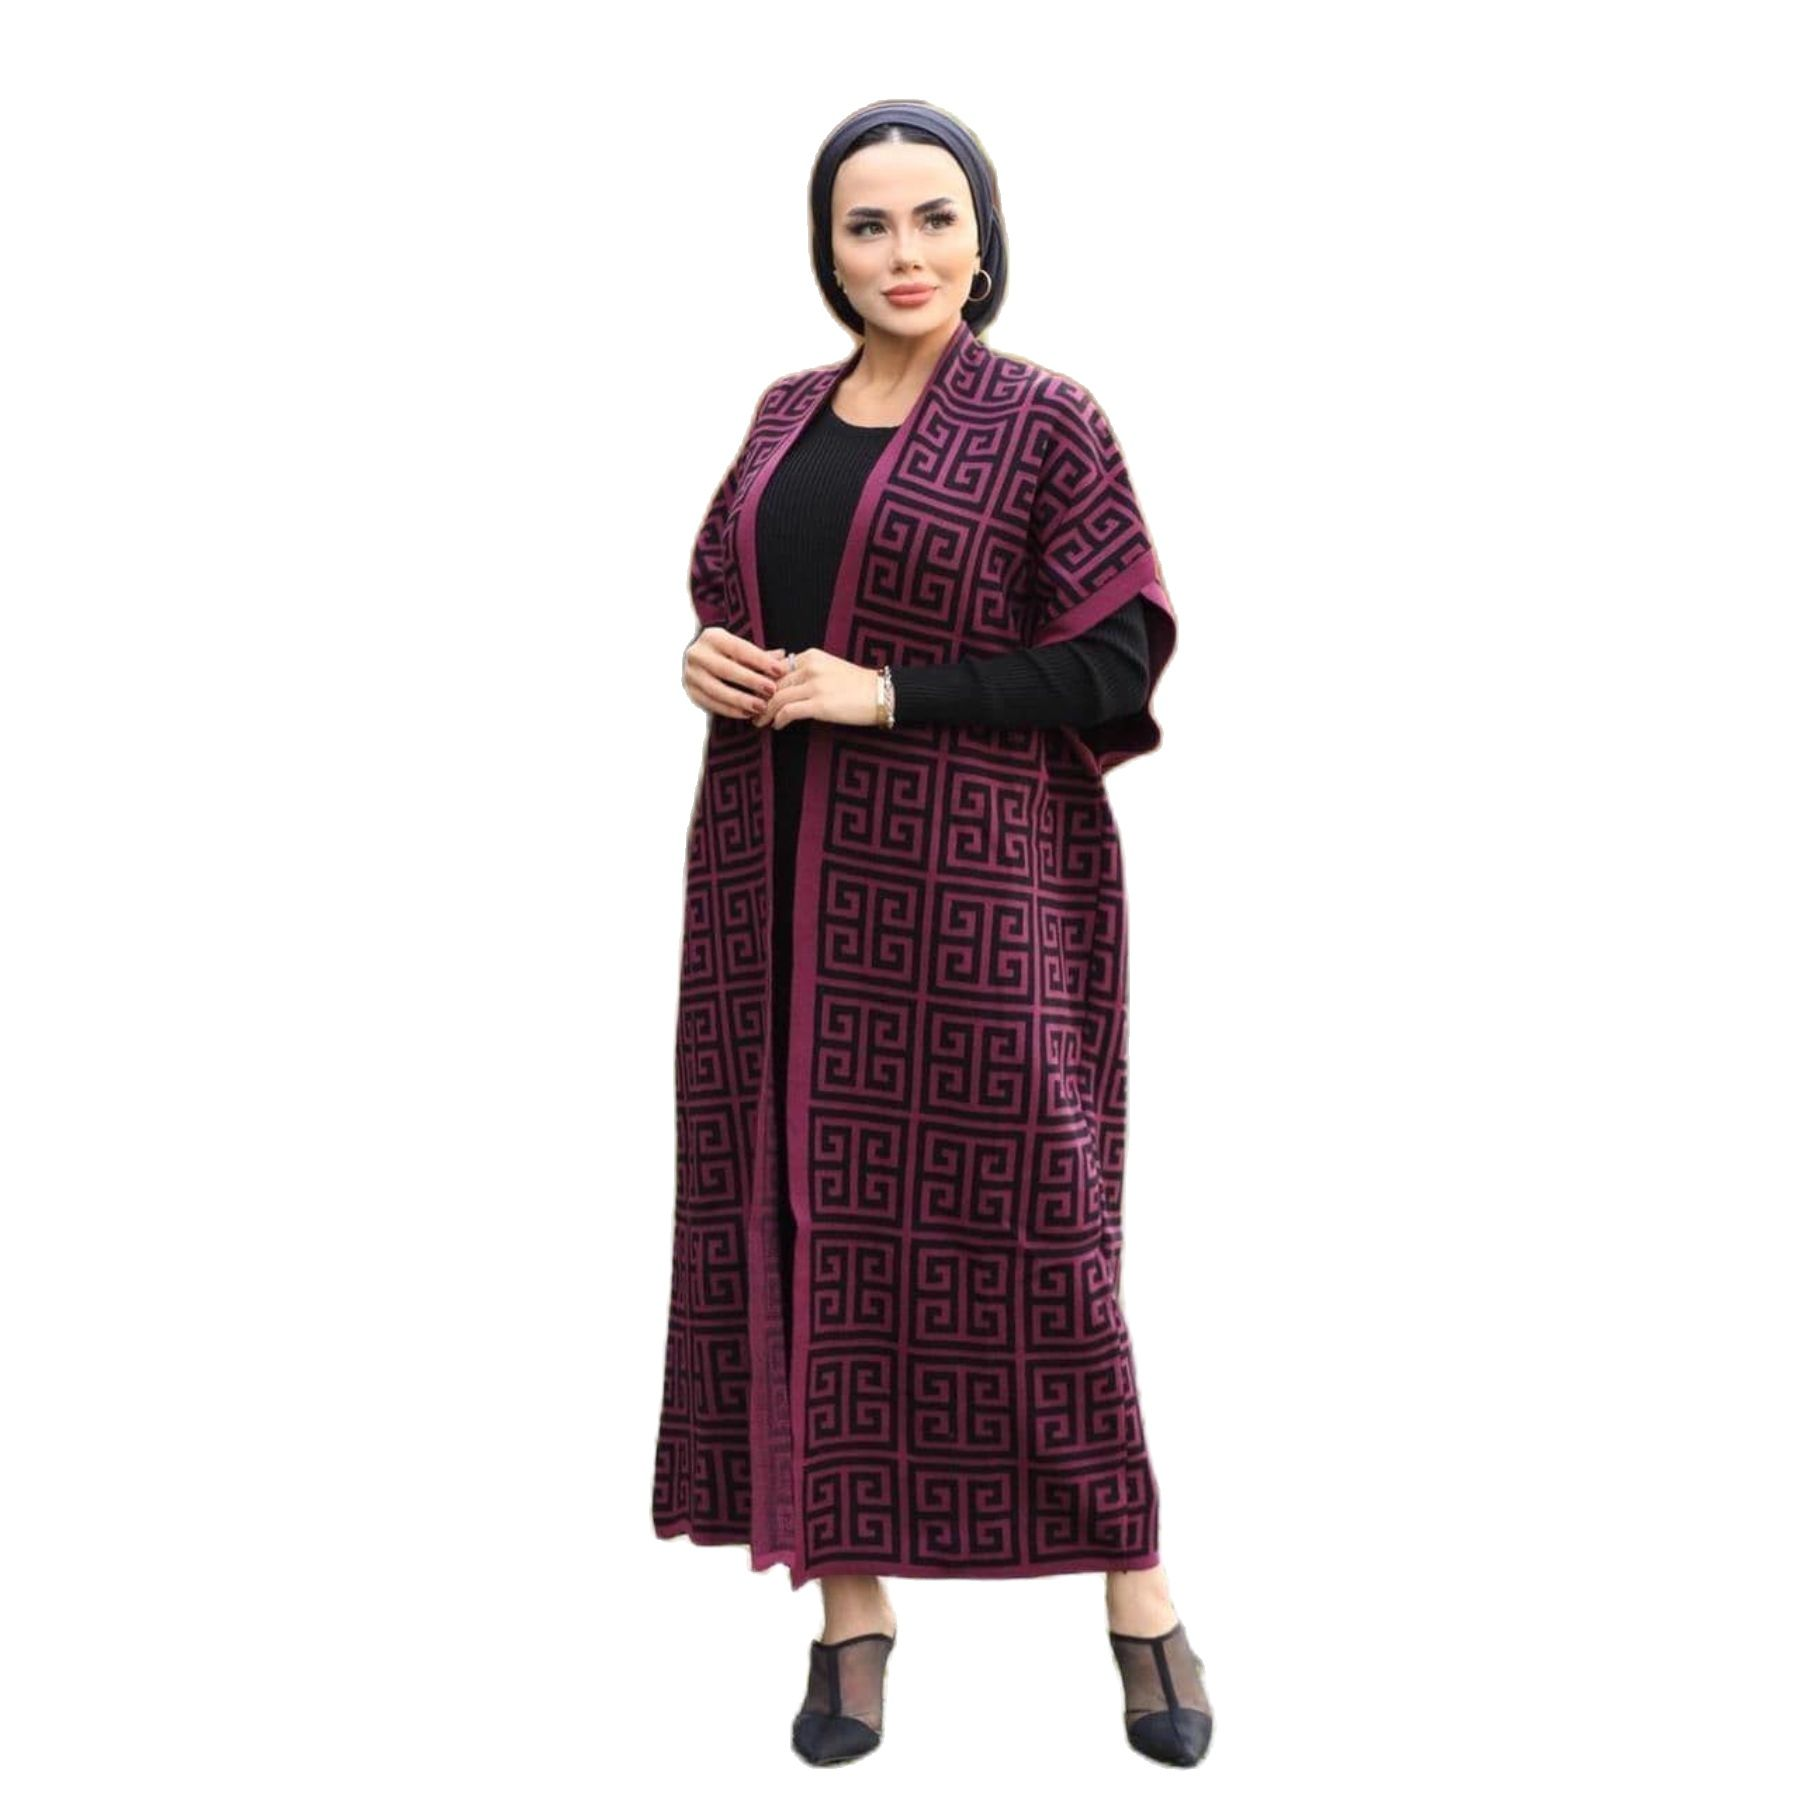 2 Pieces Patterned Women's Set, Maxi Dress and Cardigan Double Suit For Winter Islamic Fashion Muslim Clothing Turkey Dubai 2021